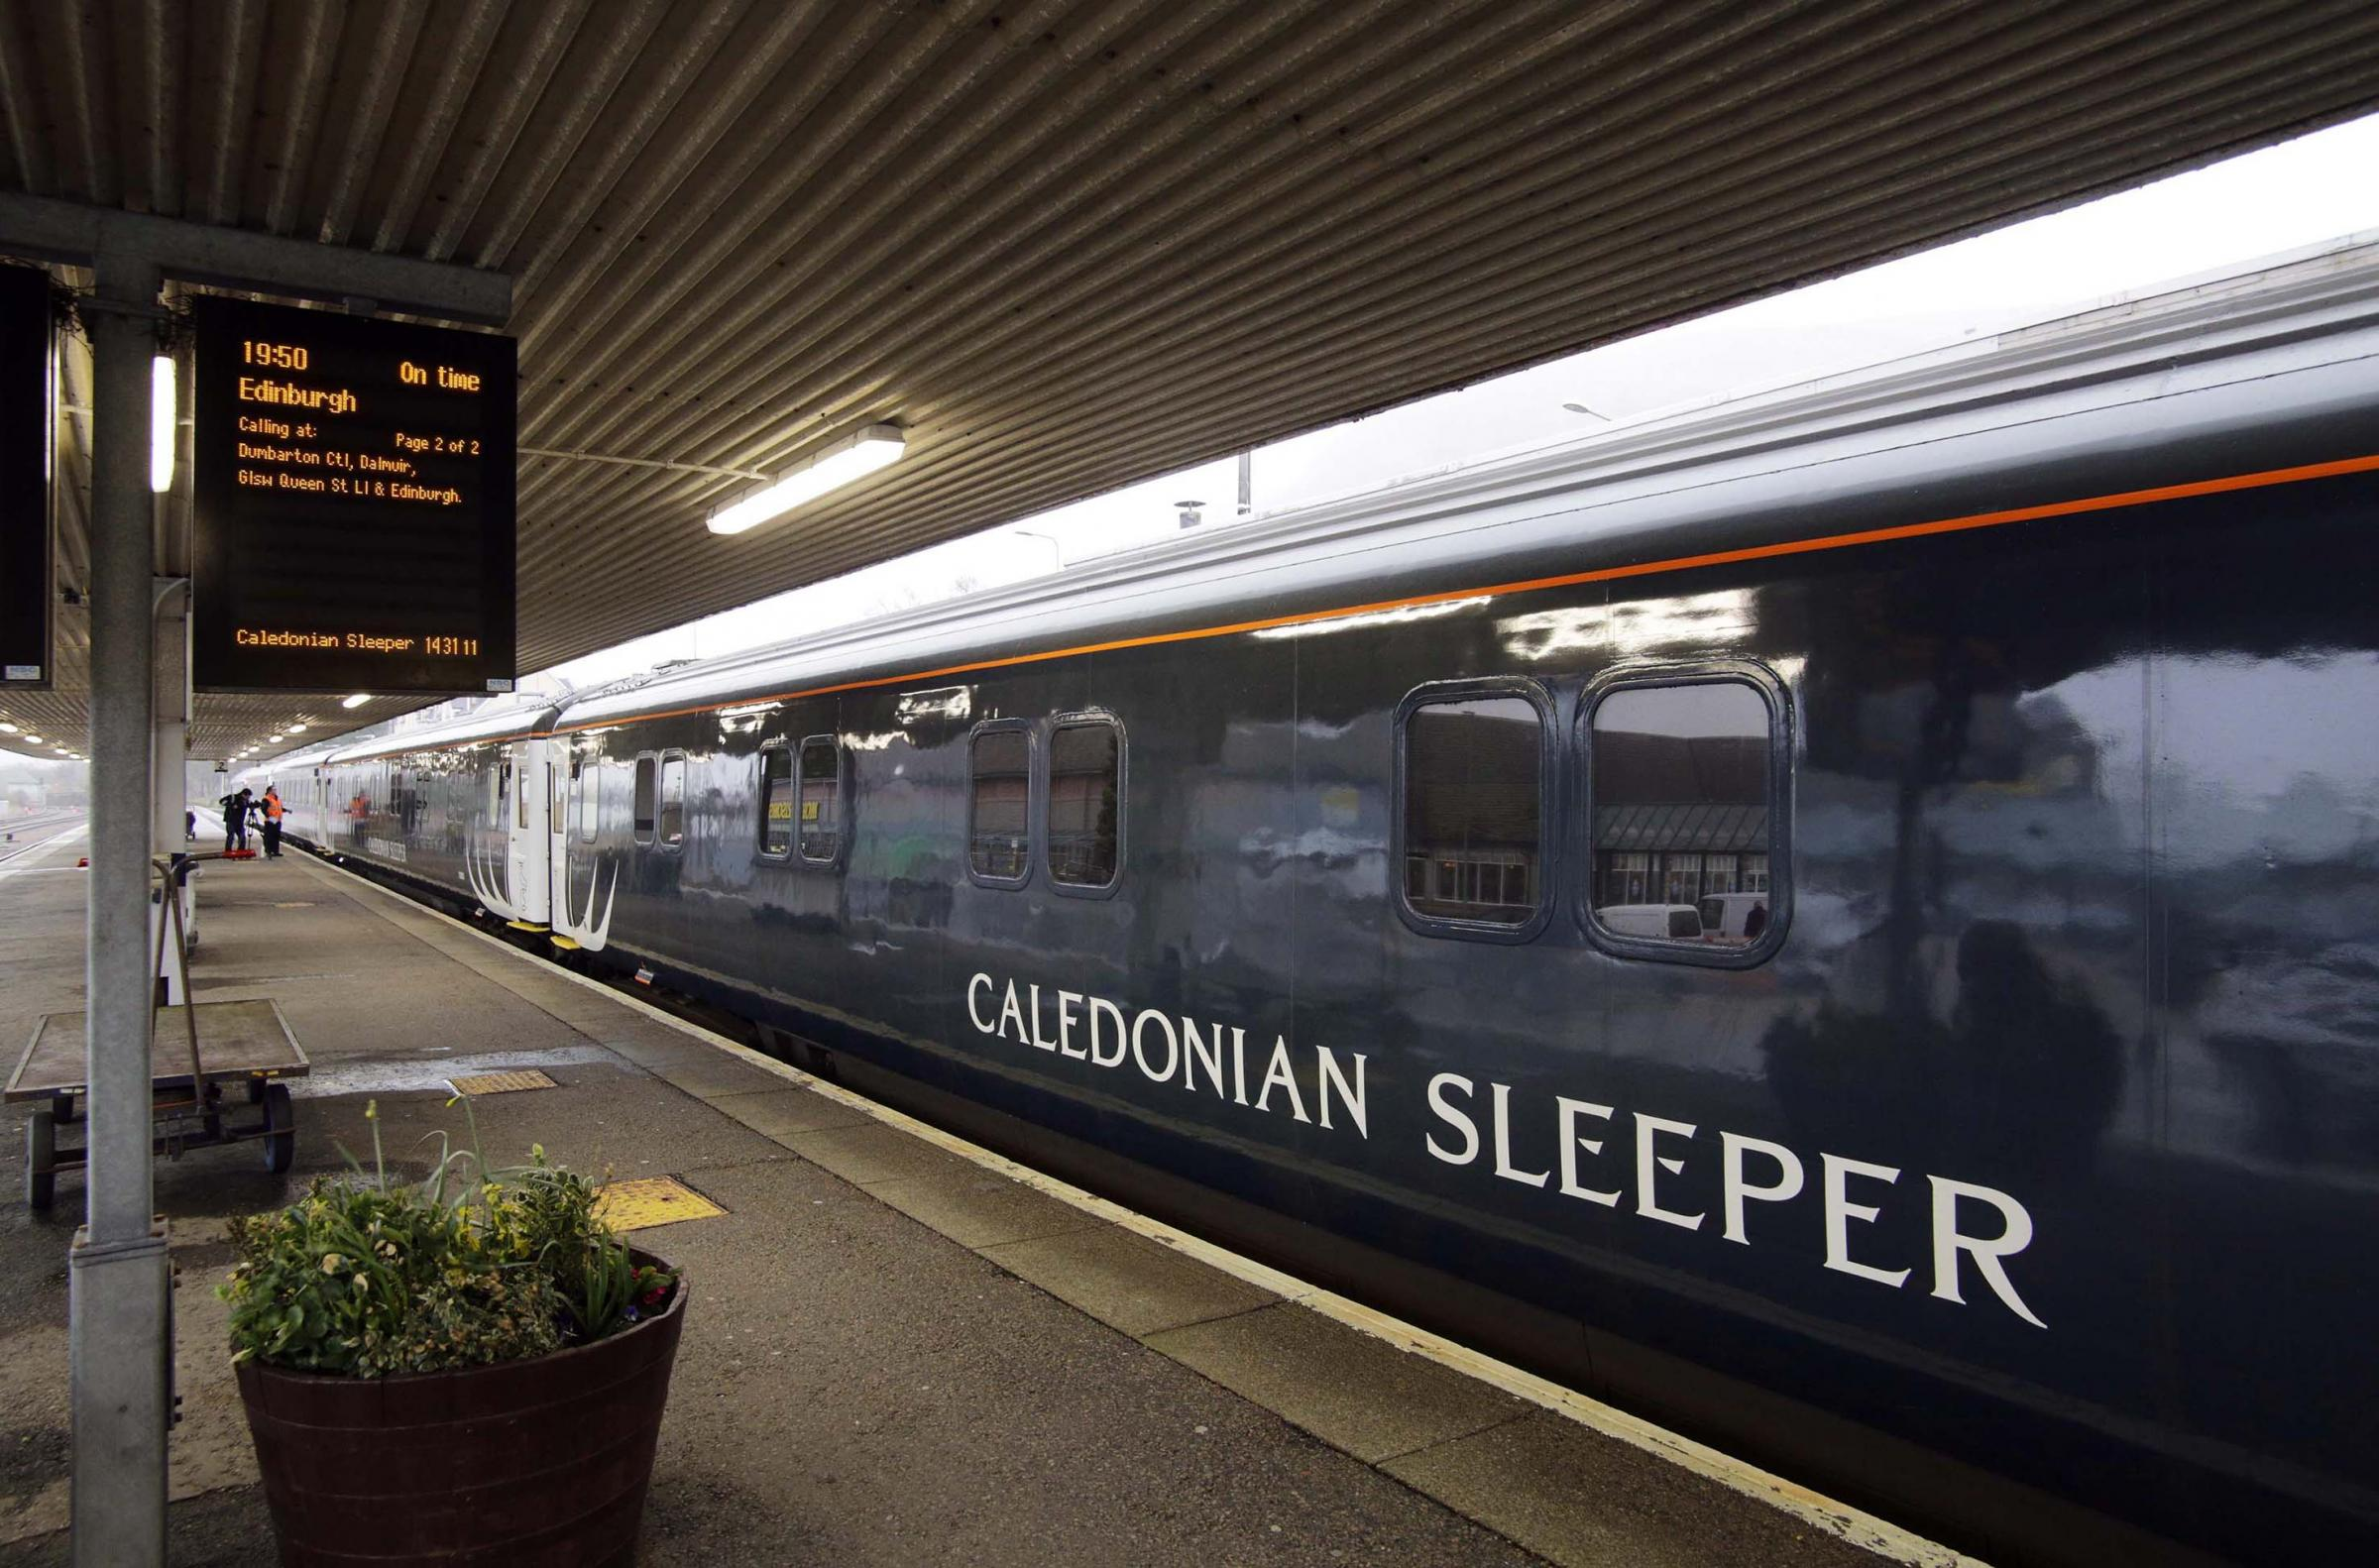 Staff working on Caledonian Sleeper service threaten strike ballot